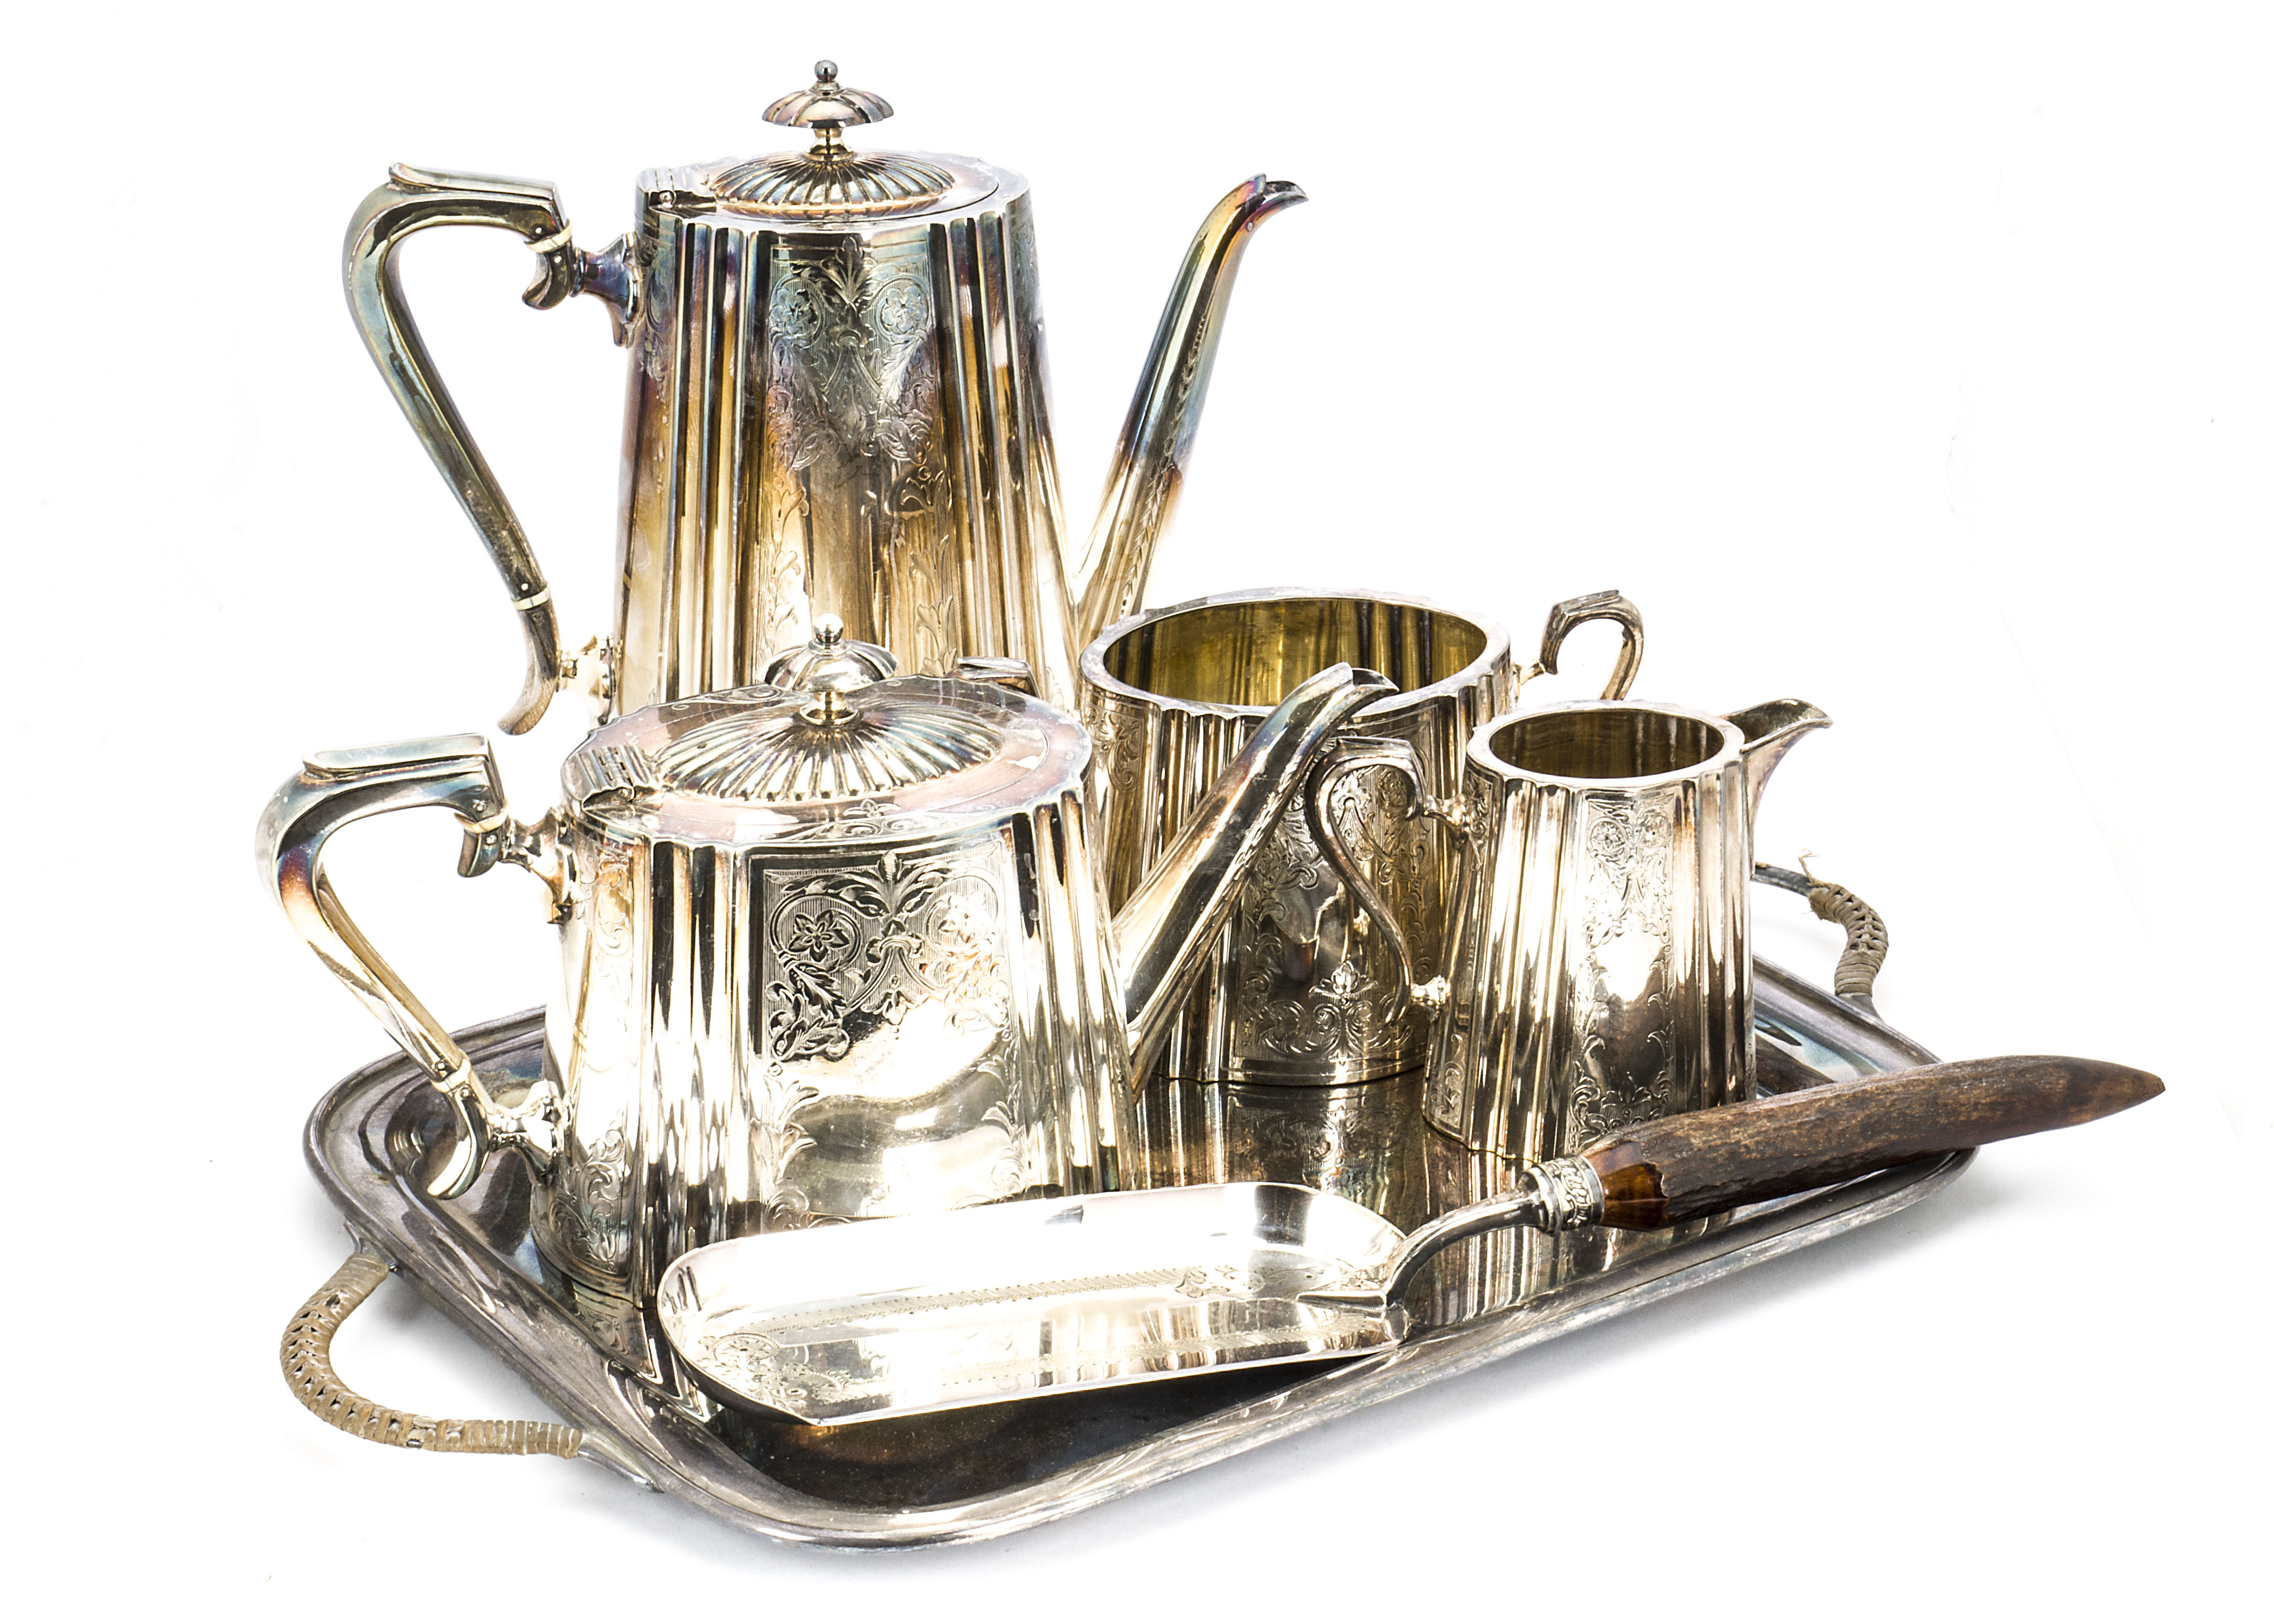 Lot 33 - A collection of Georgian and later silver and silver plated items, including six forks and four